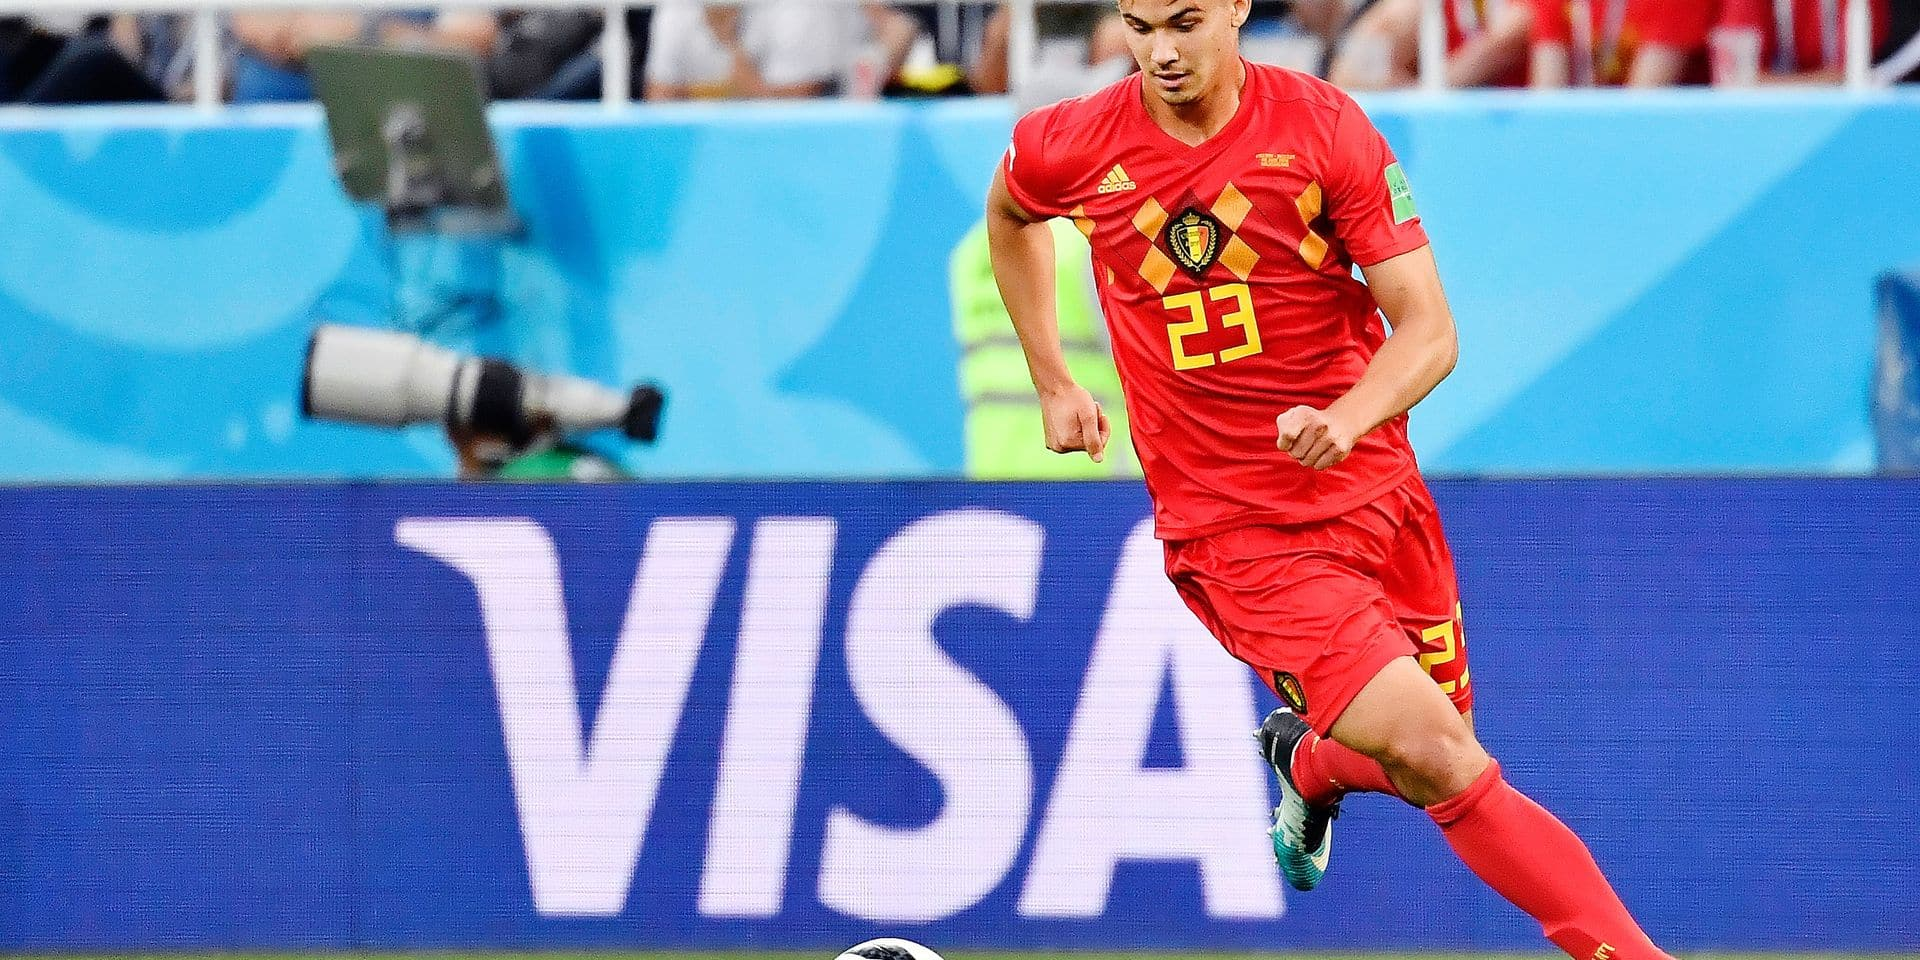 Belgium's Leander Dendoncker pictured in action during a soccer game between Belgian national soccer team the Red Devils and England, Thursday 28 June 2018 in Kaliningrad, Russia, the third and last in Group G of the FIFA World Cup 2018. BELGA PHOTO DIRK WAEM